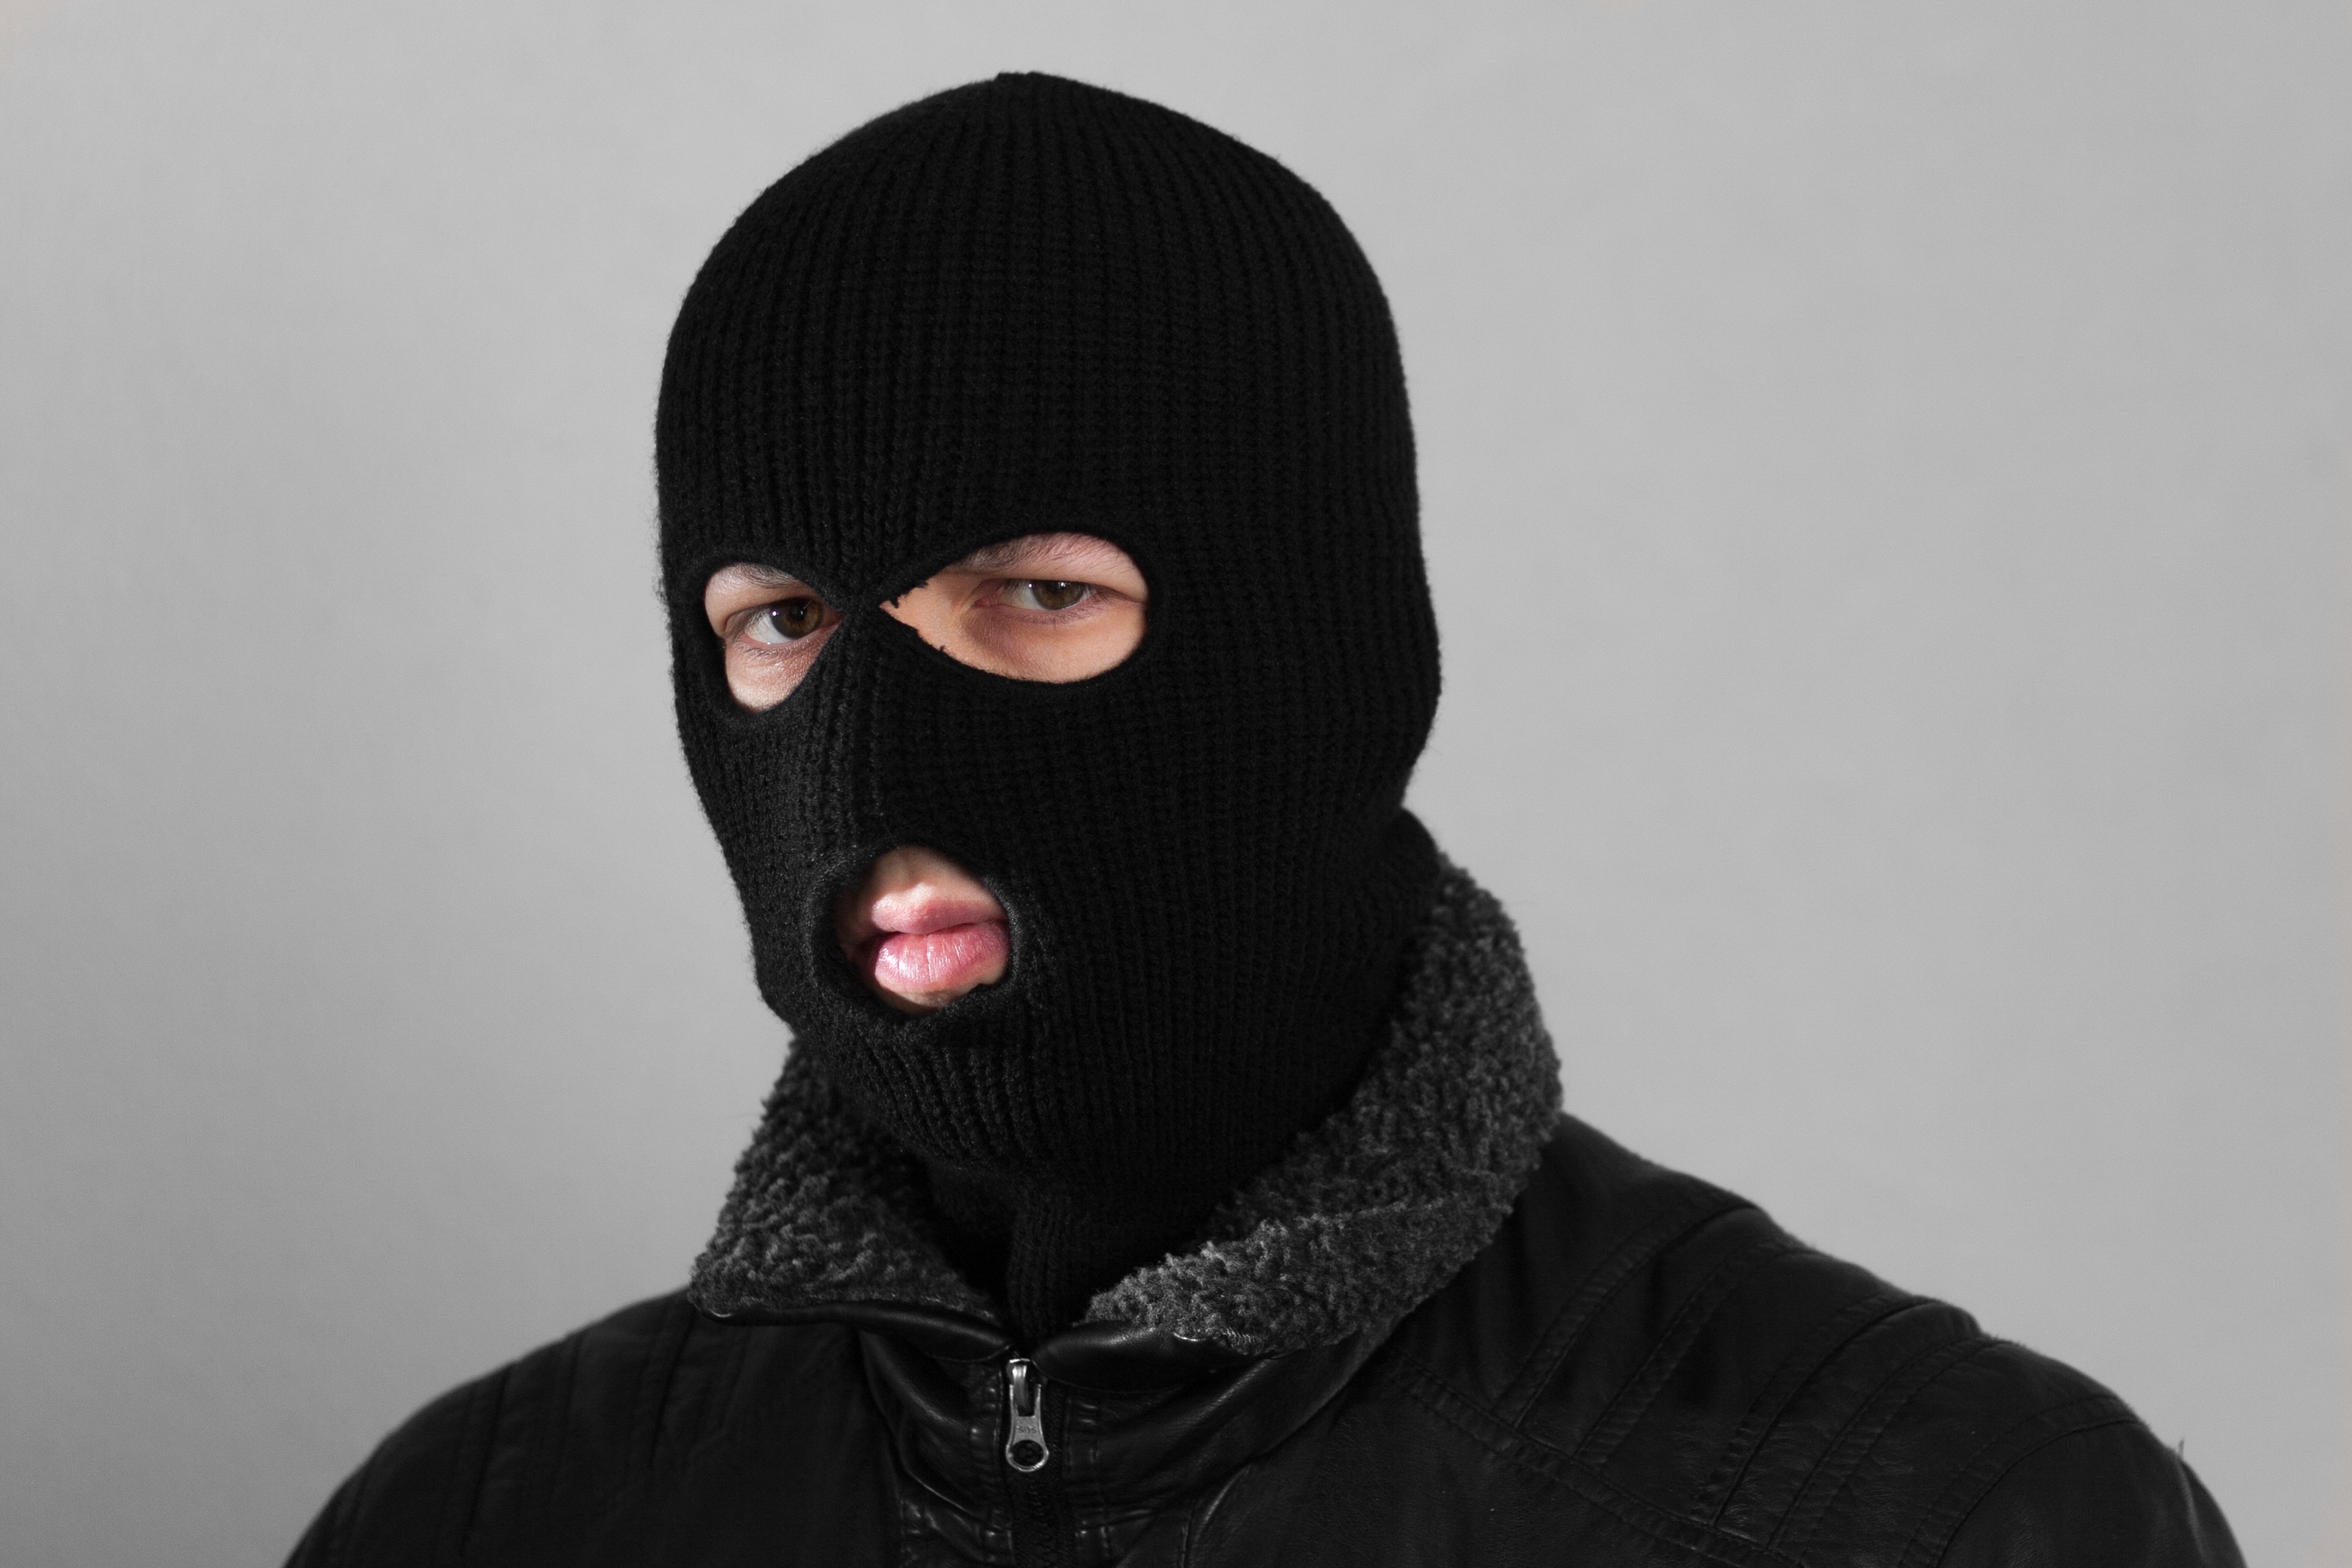 File:Balaclava 3 hole black.jpg - Wikimedia Commons